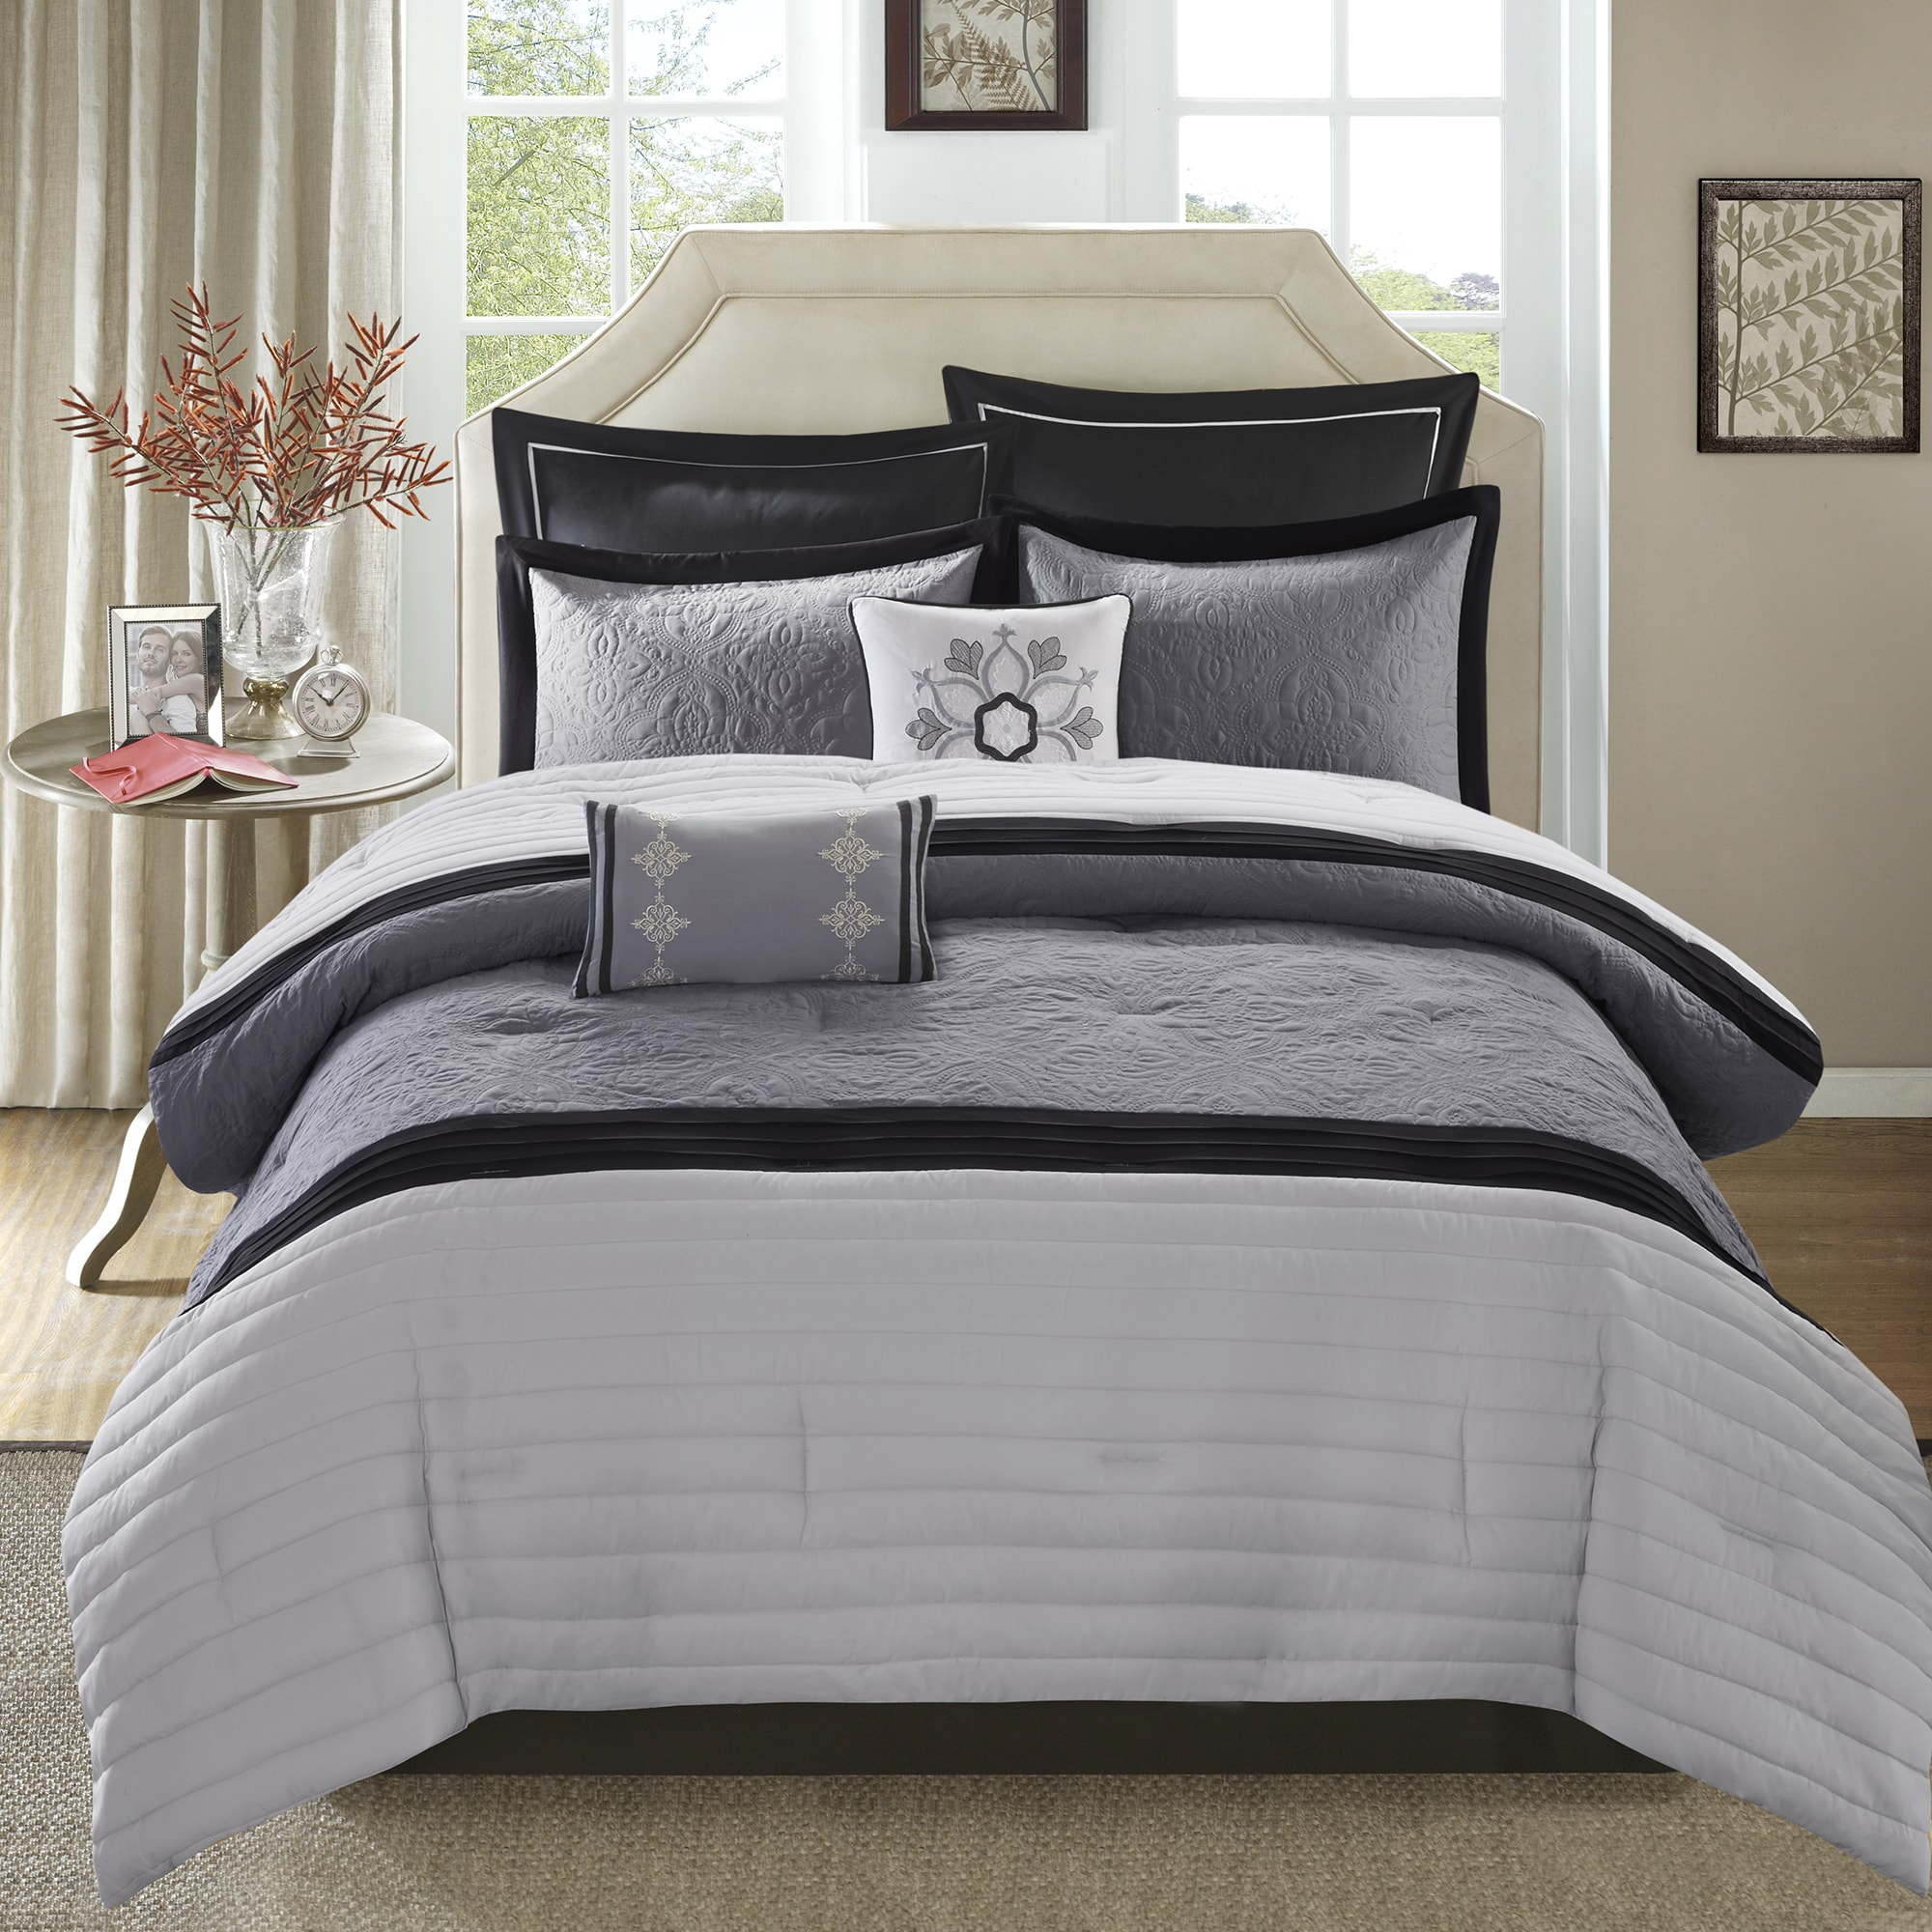 white king and products in black bwt comforter piece set leaf vcny gray bed a home bw bag sets